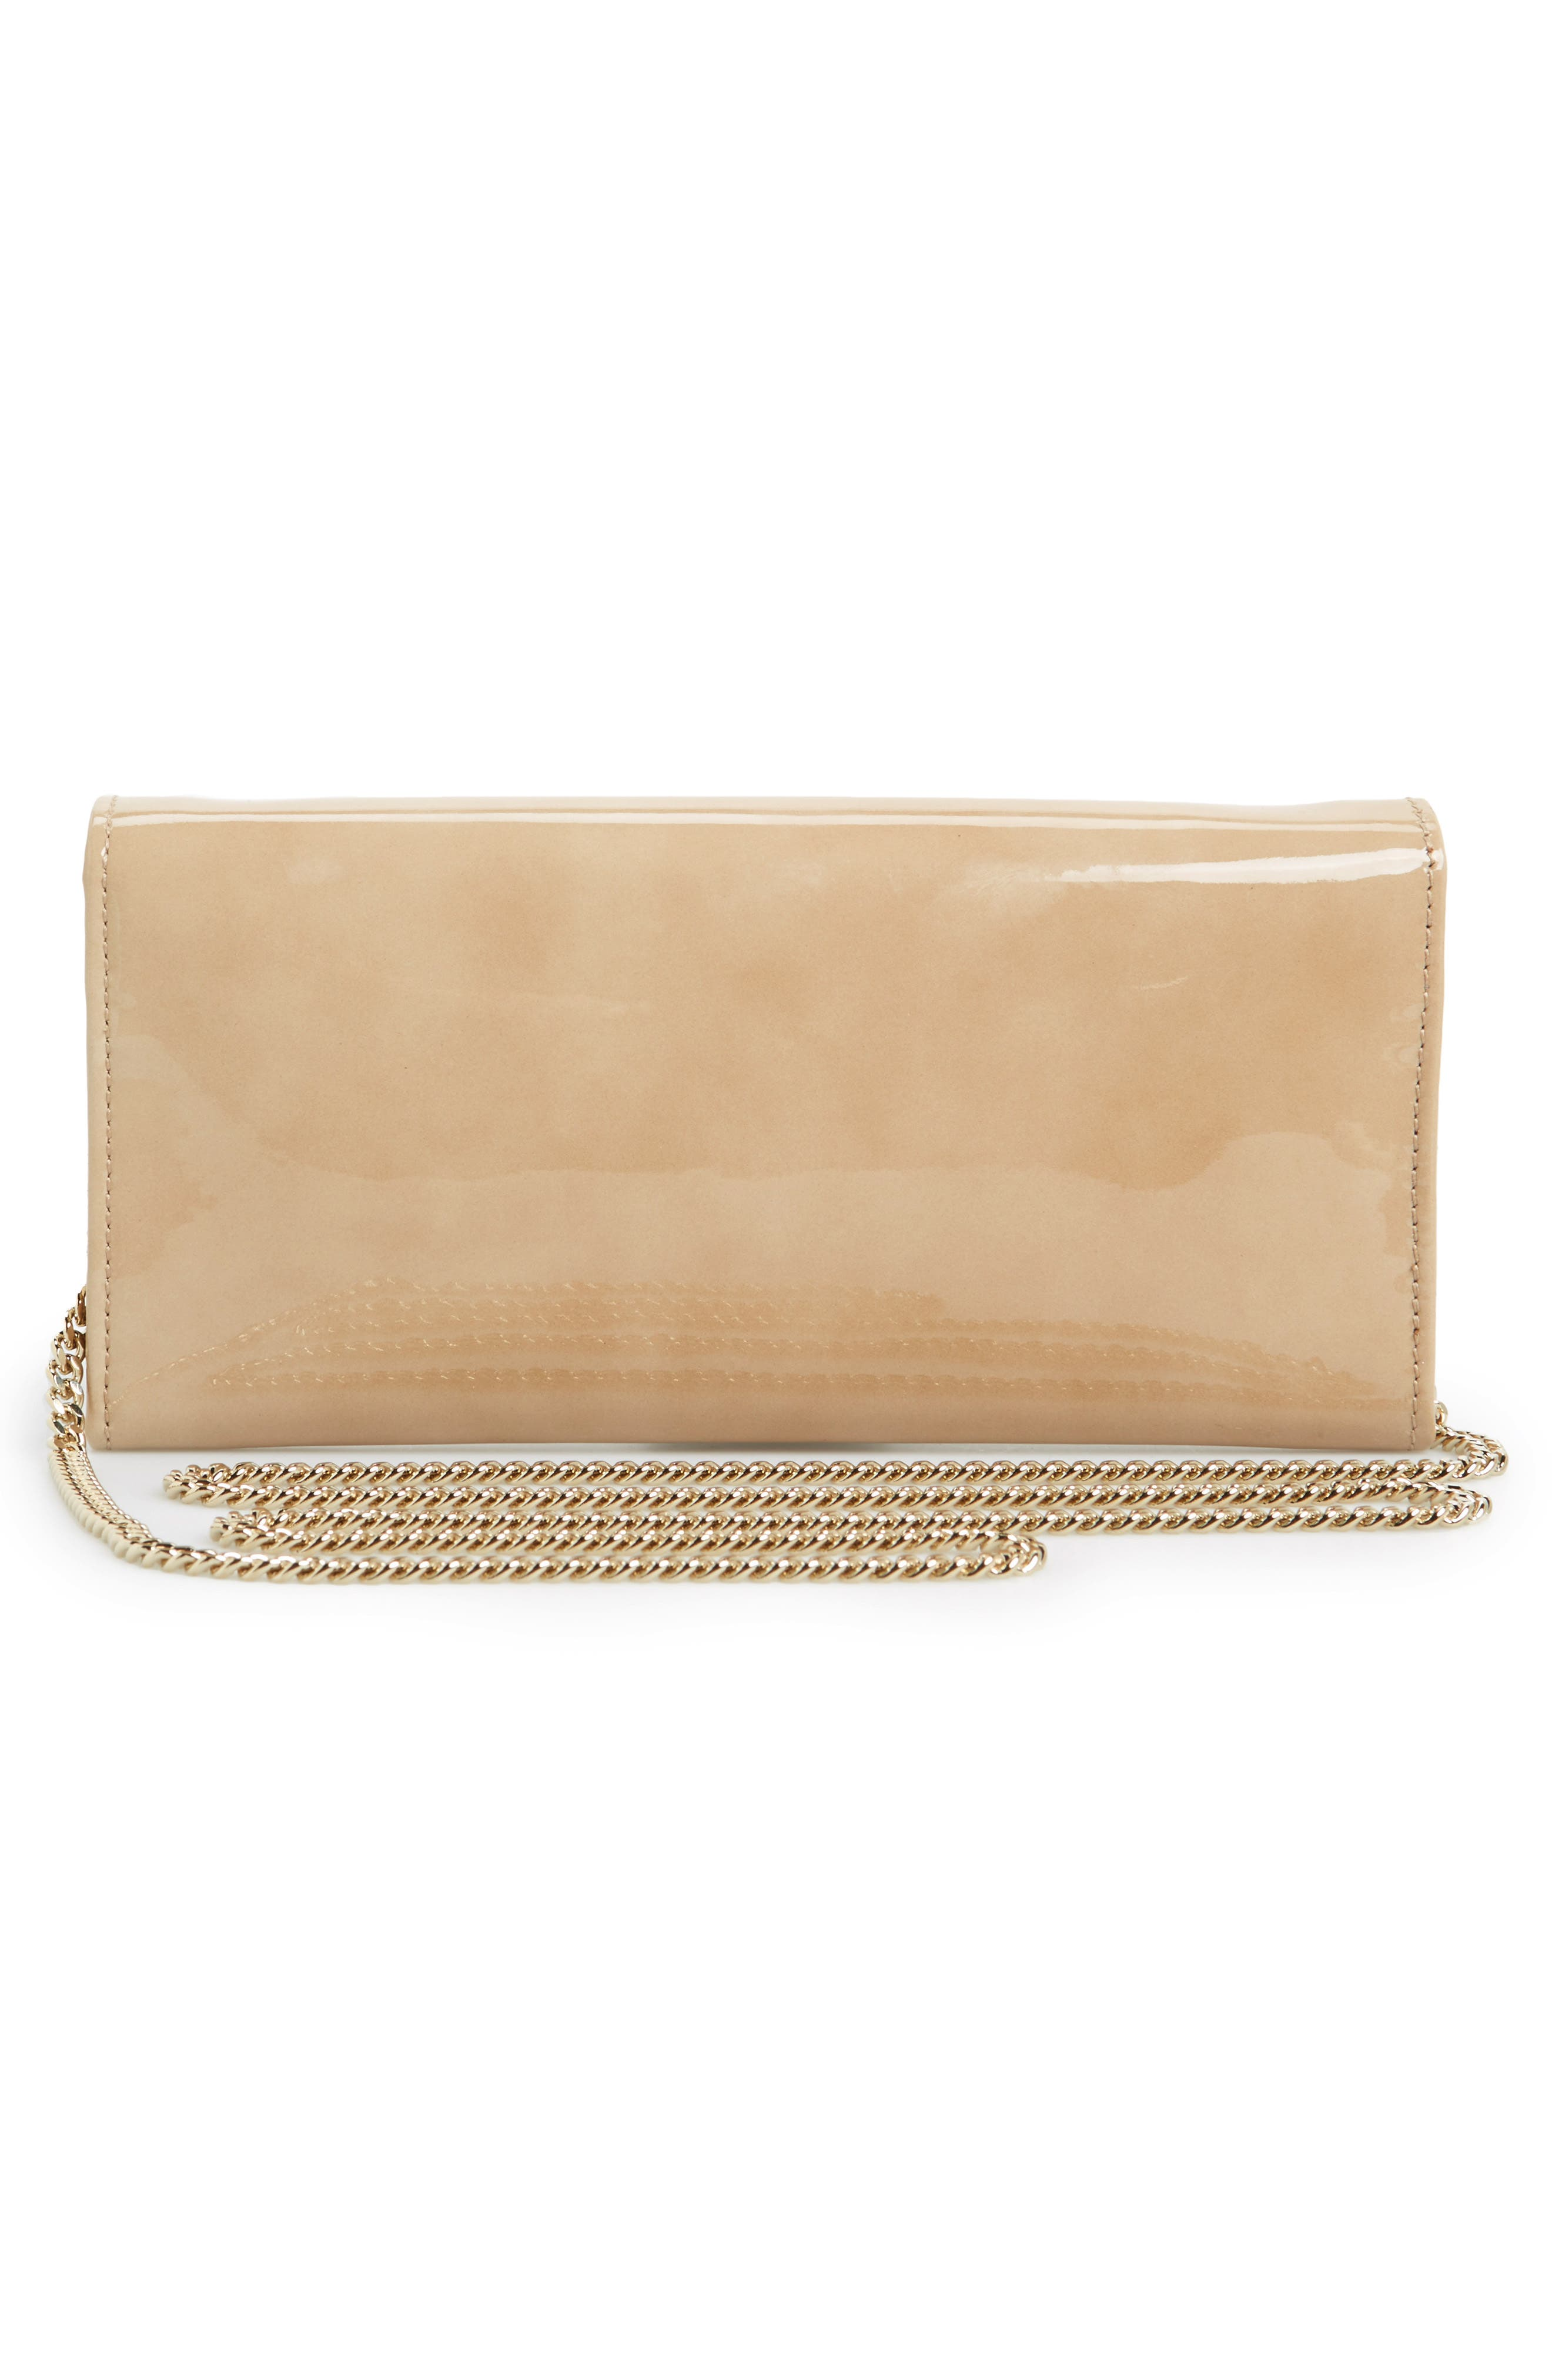 Alternate Image 3  - Jimmy Choo Milla Leather Wallet on a Chain